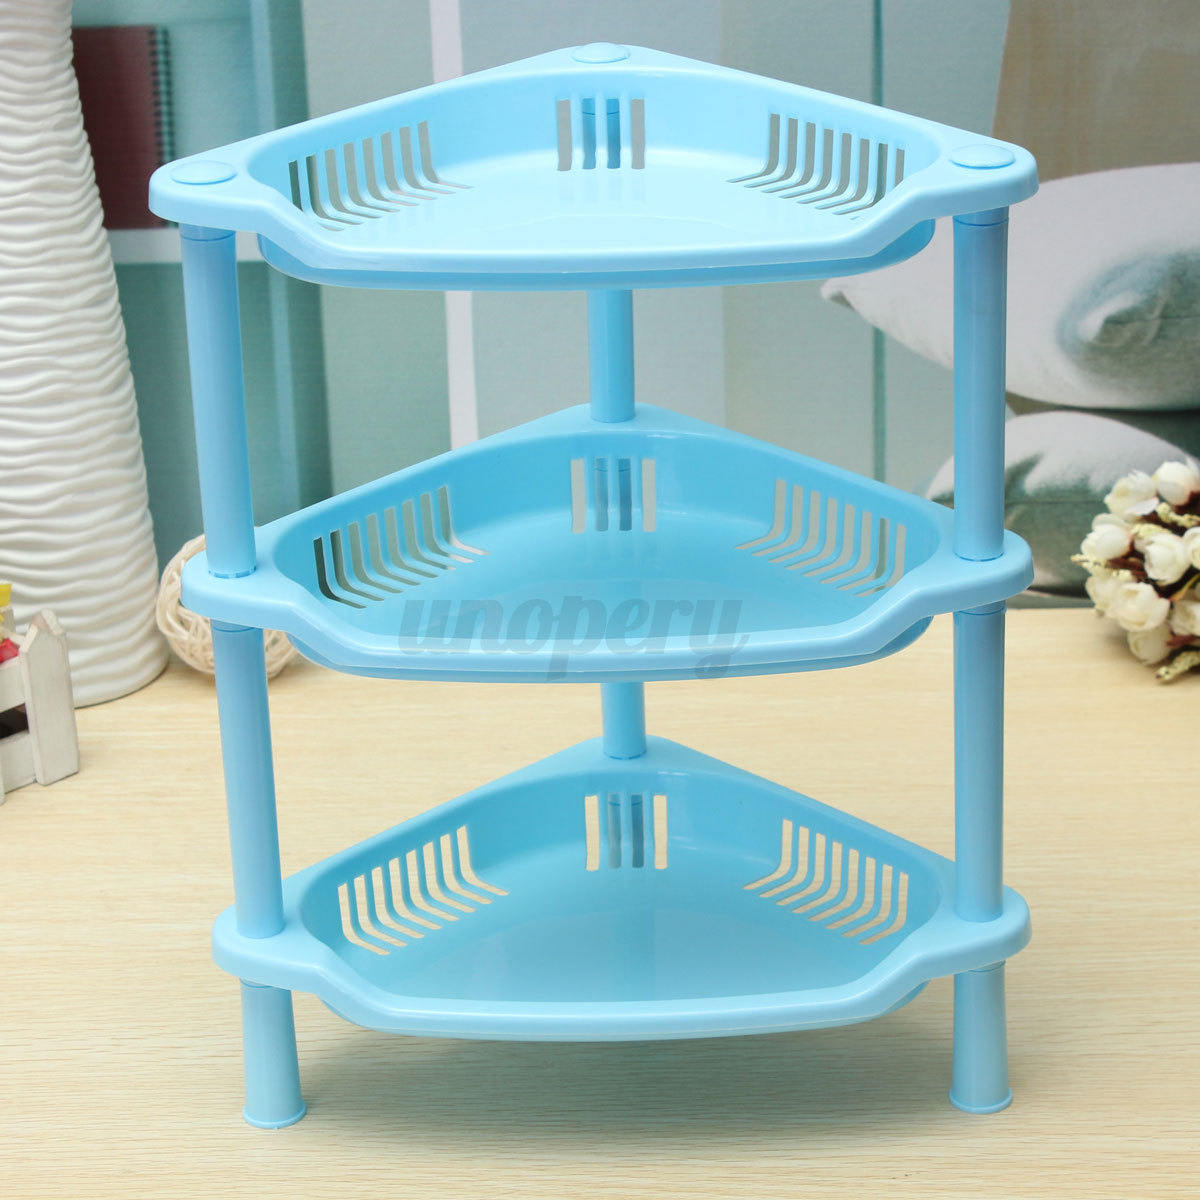 3 TIER PLASTIC CORNER SHELF STORAGE CADDY SHOWER BATHROOM KITCHEN ...